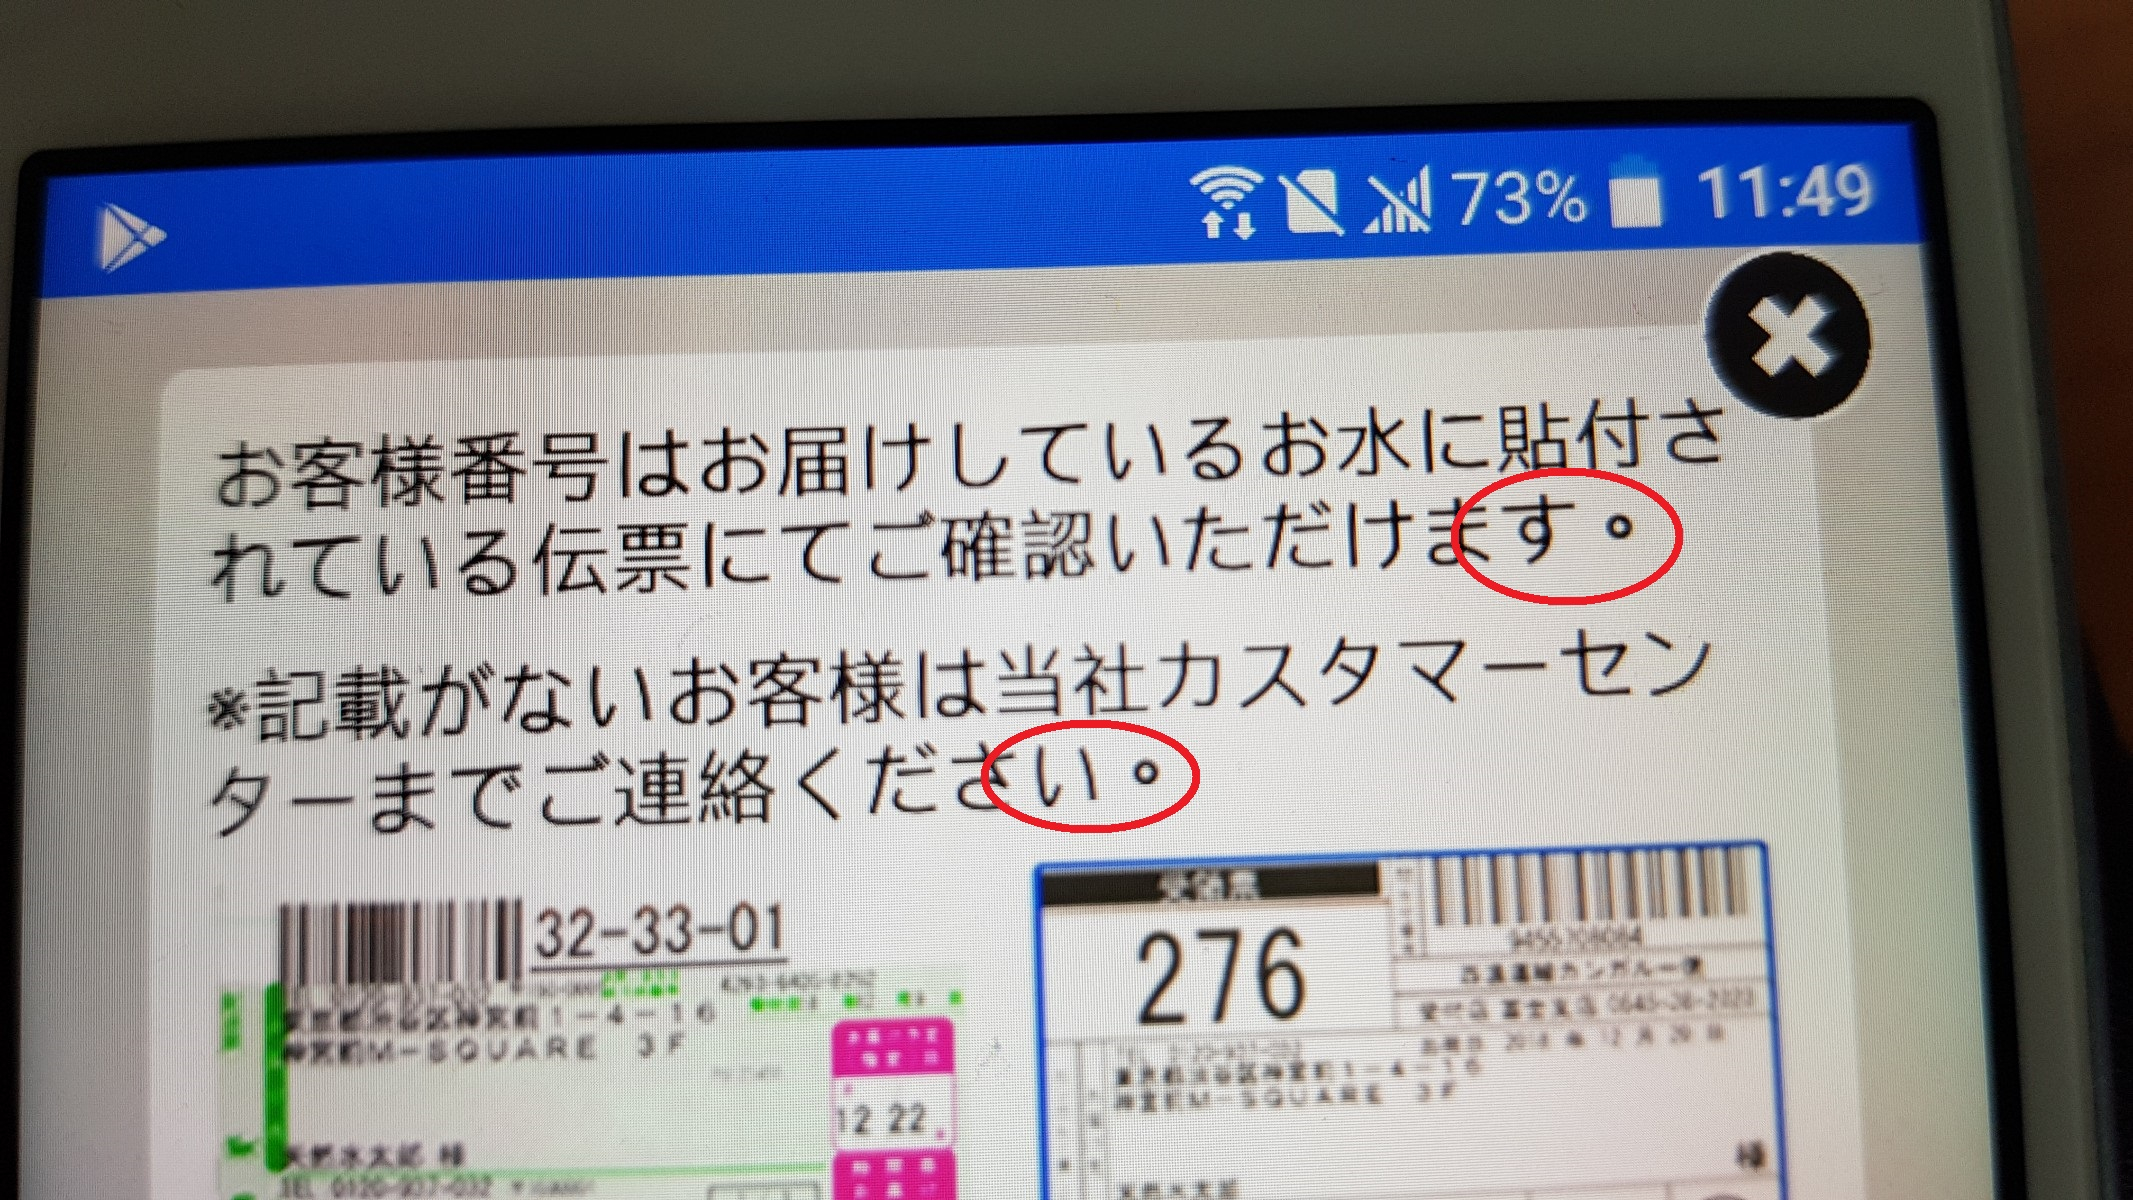 Xamarin Forms Android device's default Japanese Font produce